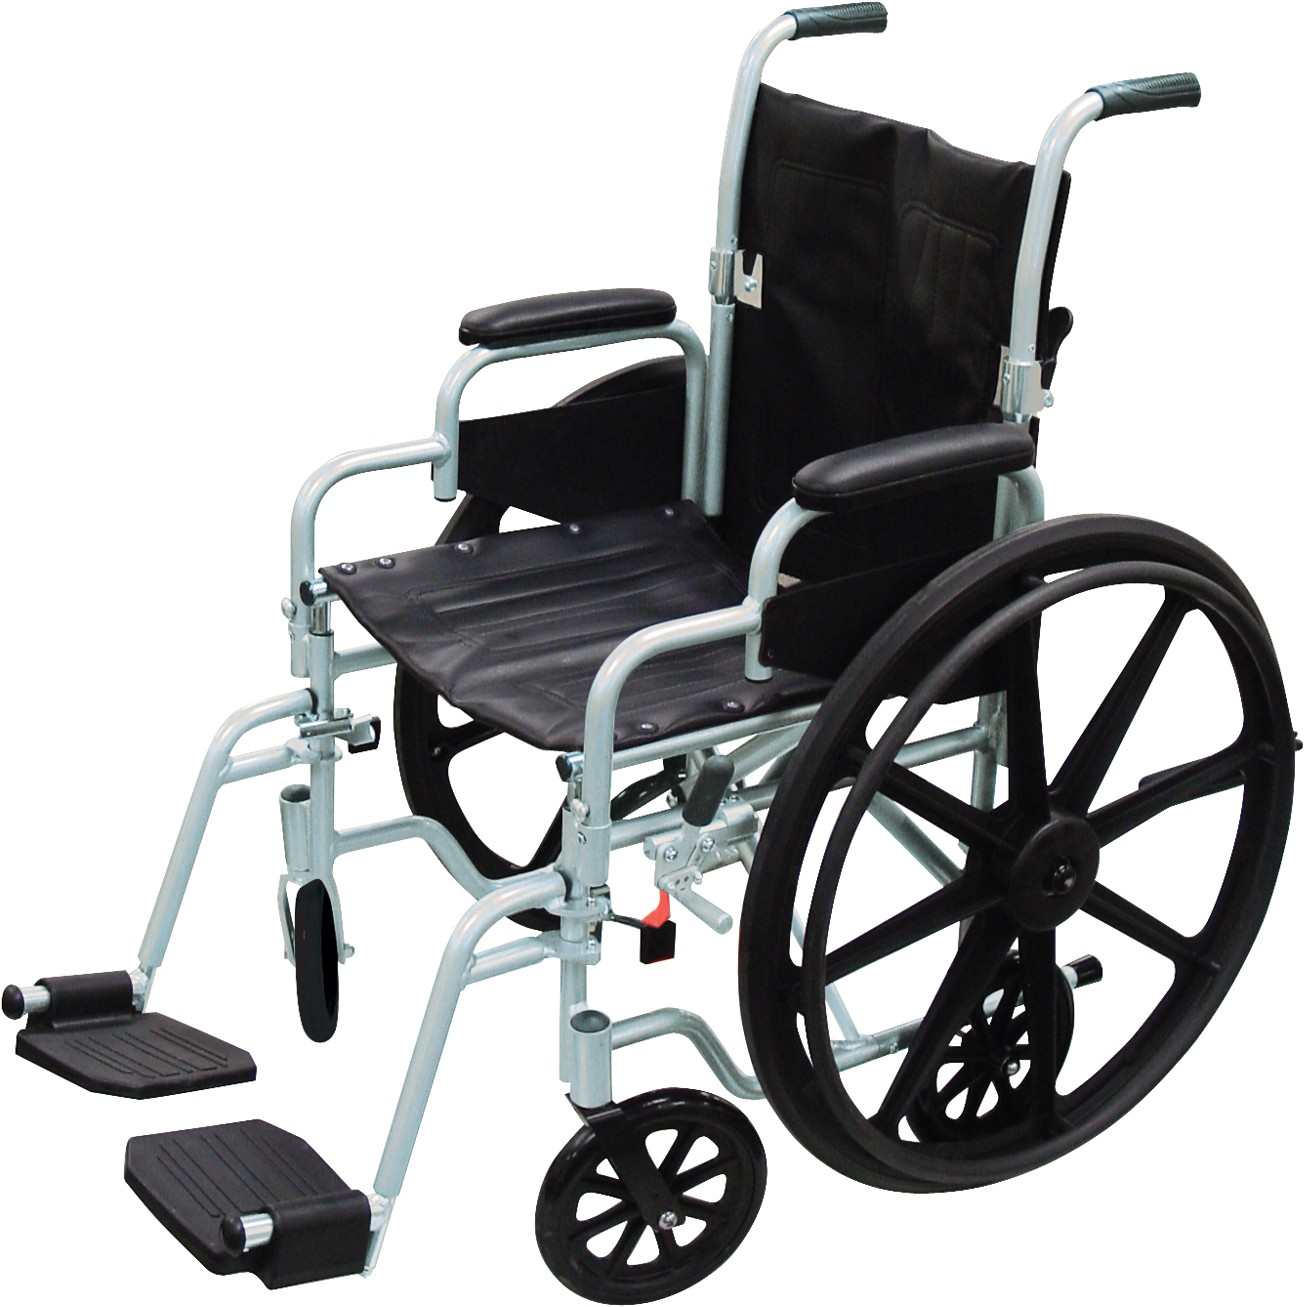 PolyFly lightweight wheelchair